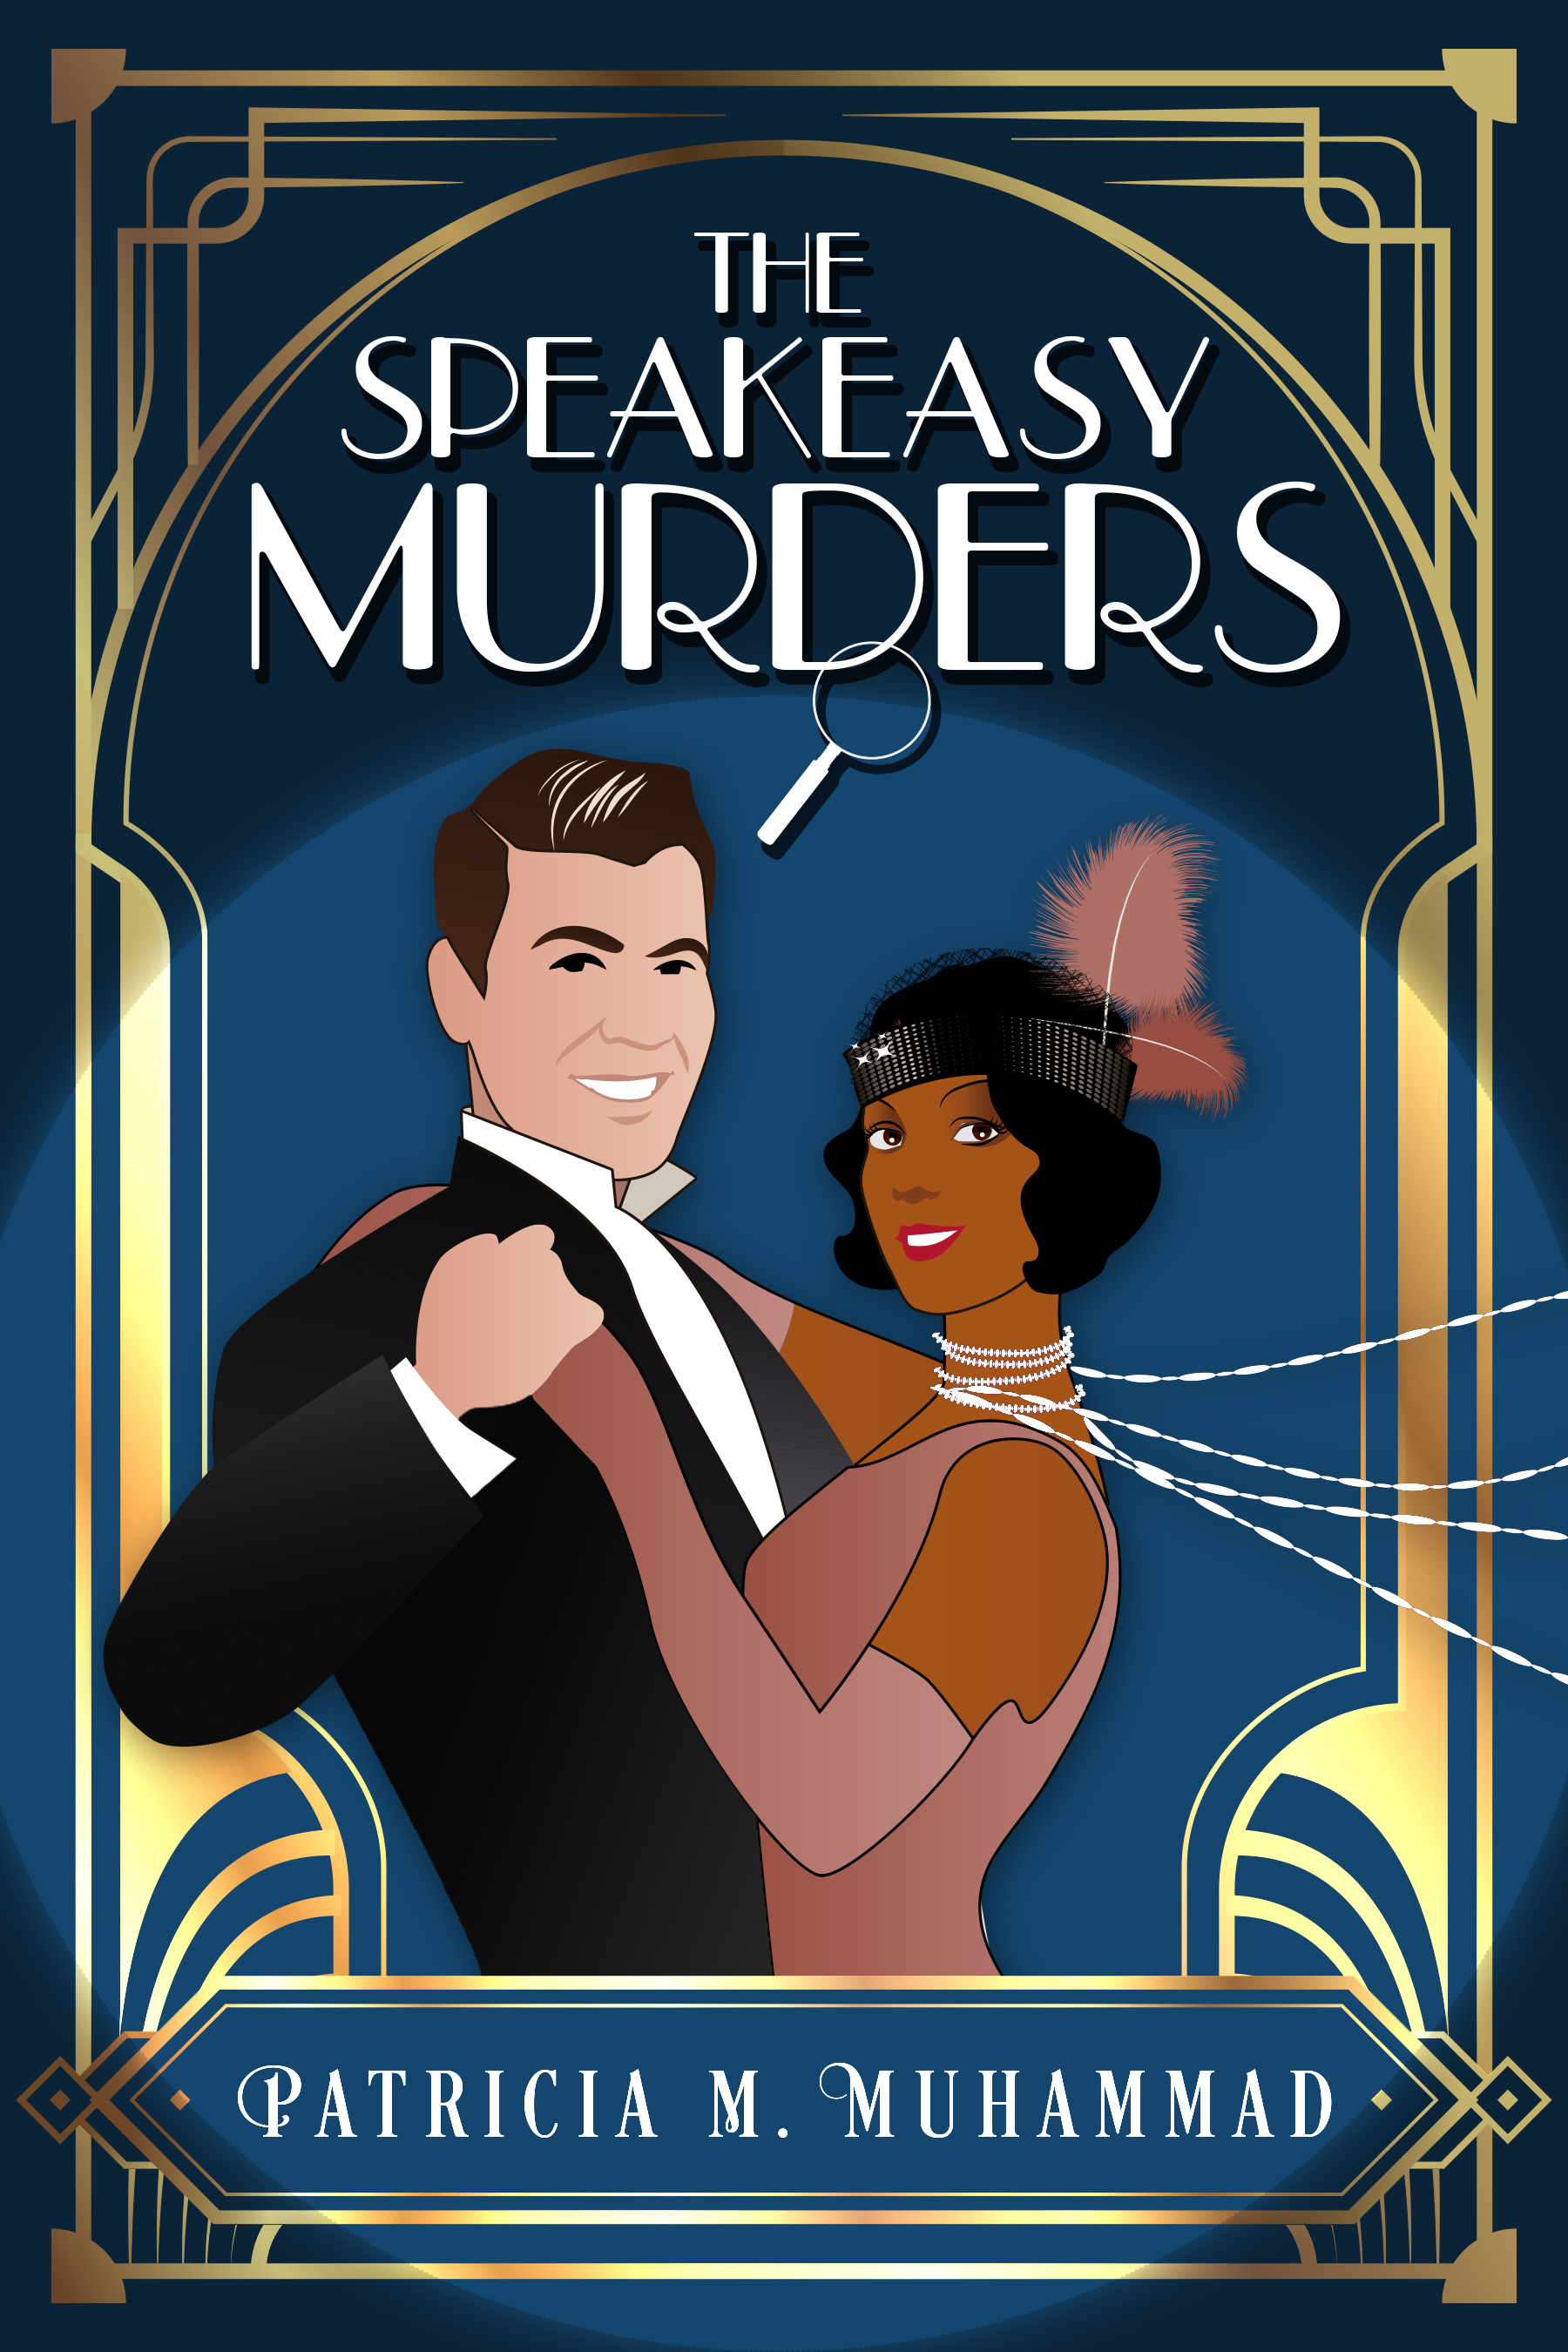 Fiction Author, Patricia M. Muhammad Debuts Her First Mystery/Detective Romance Novel